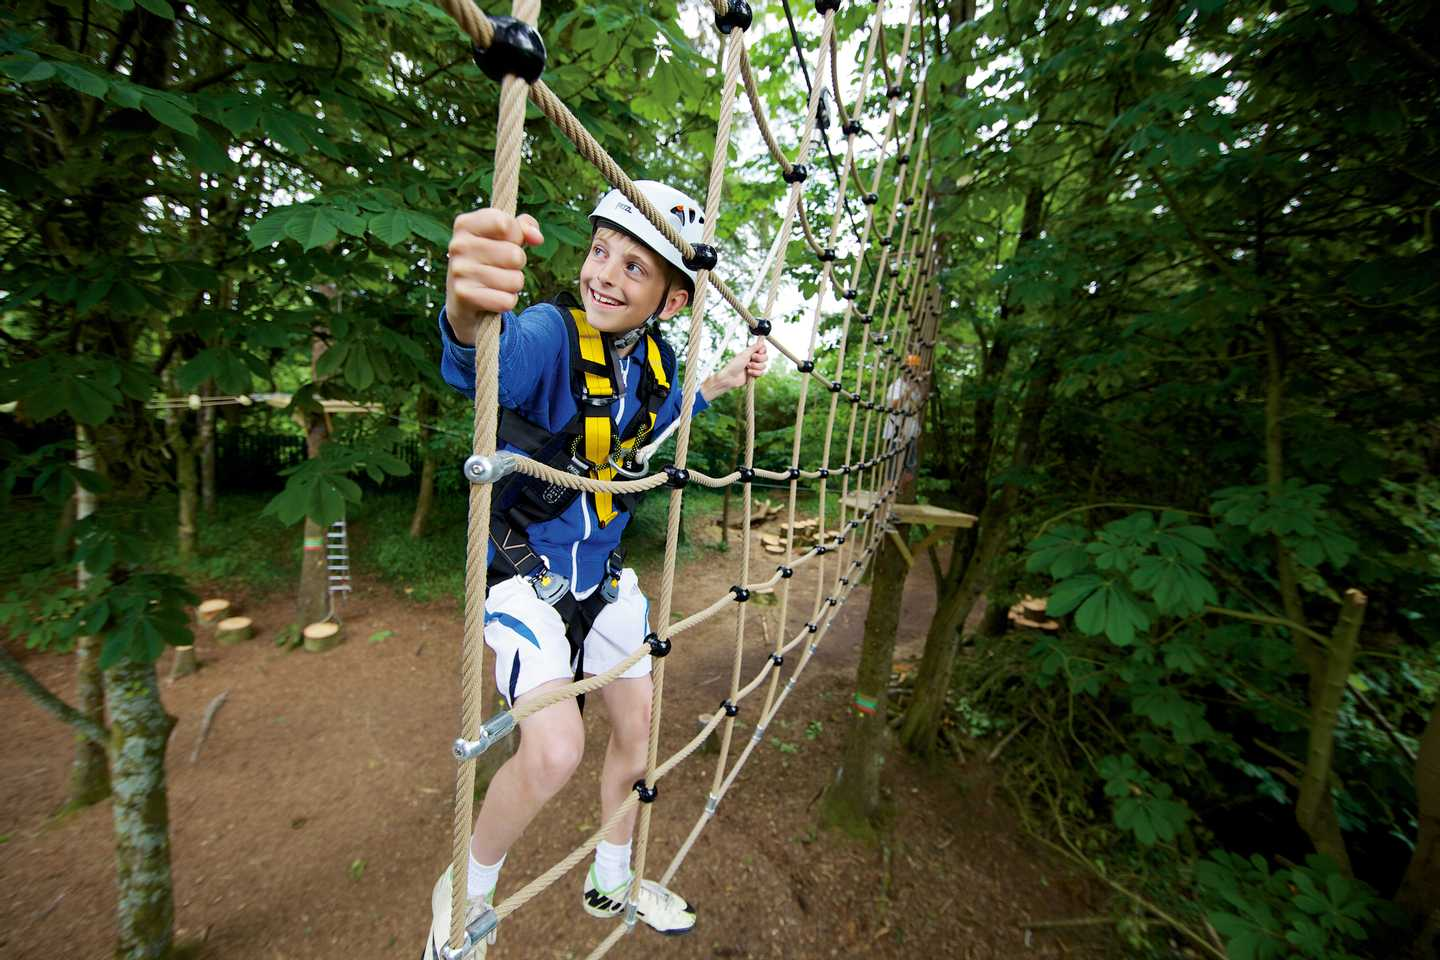 A guest on the aerial adventure course